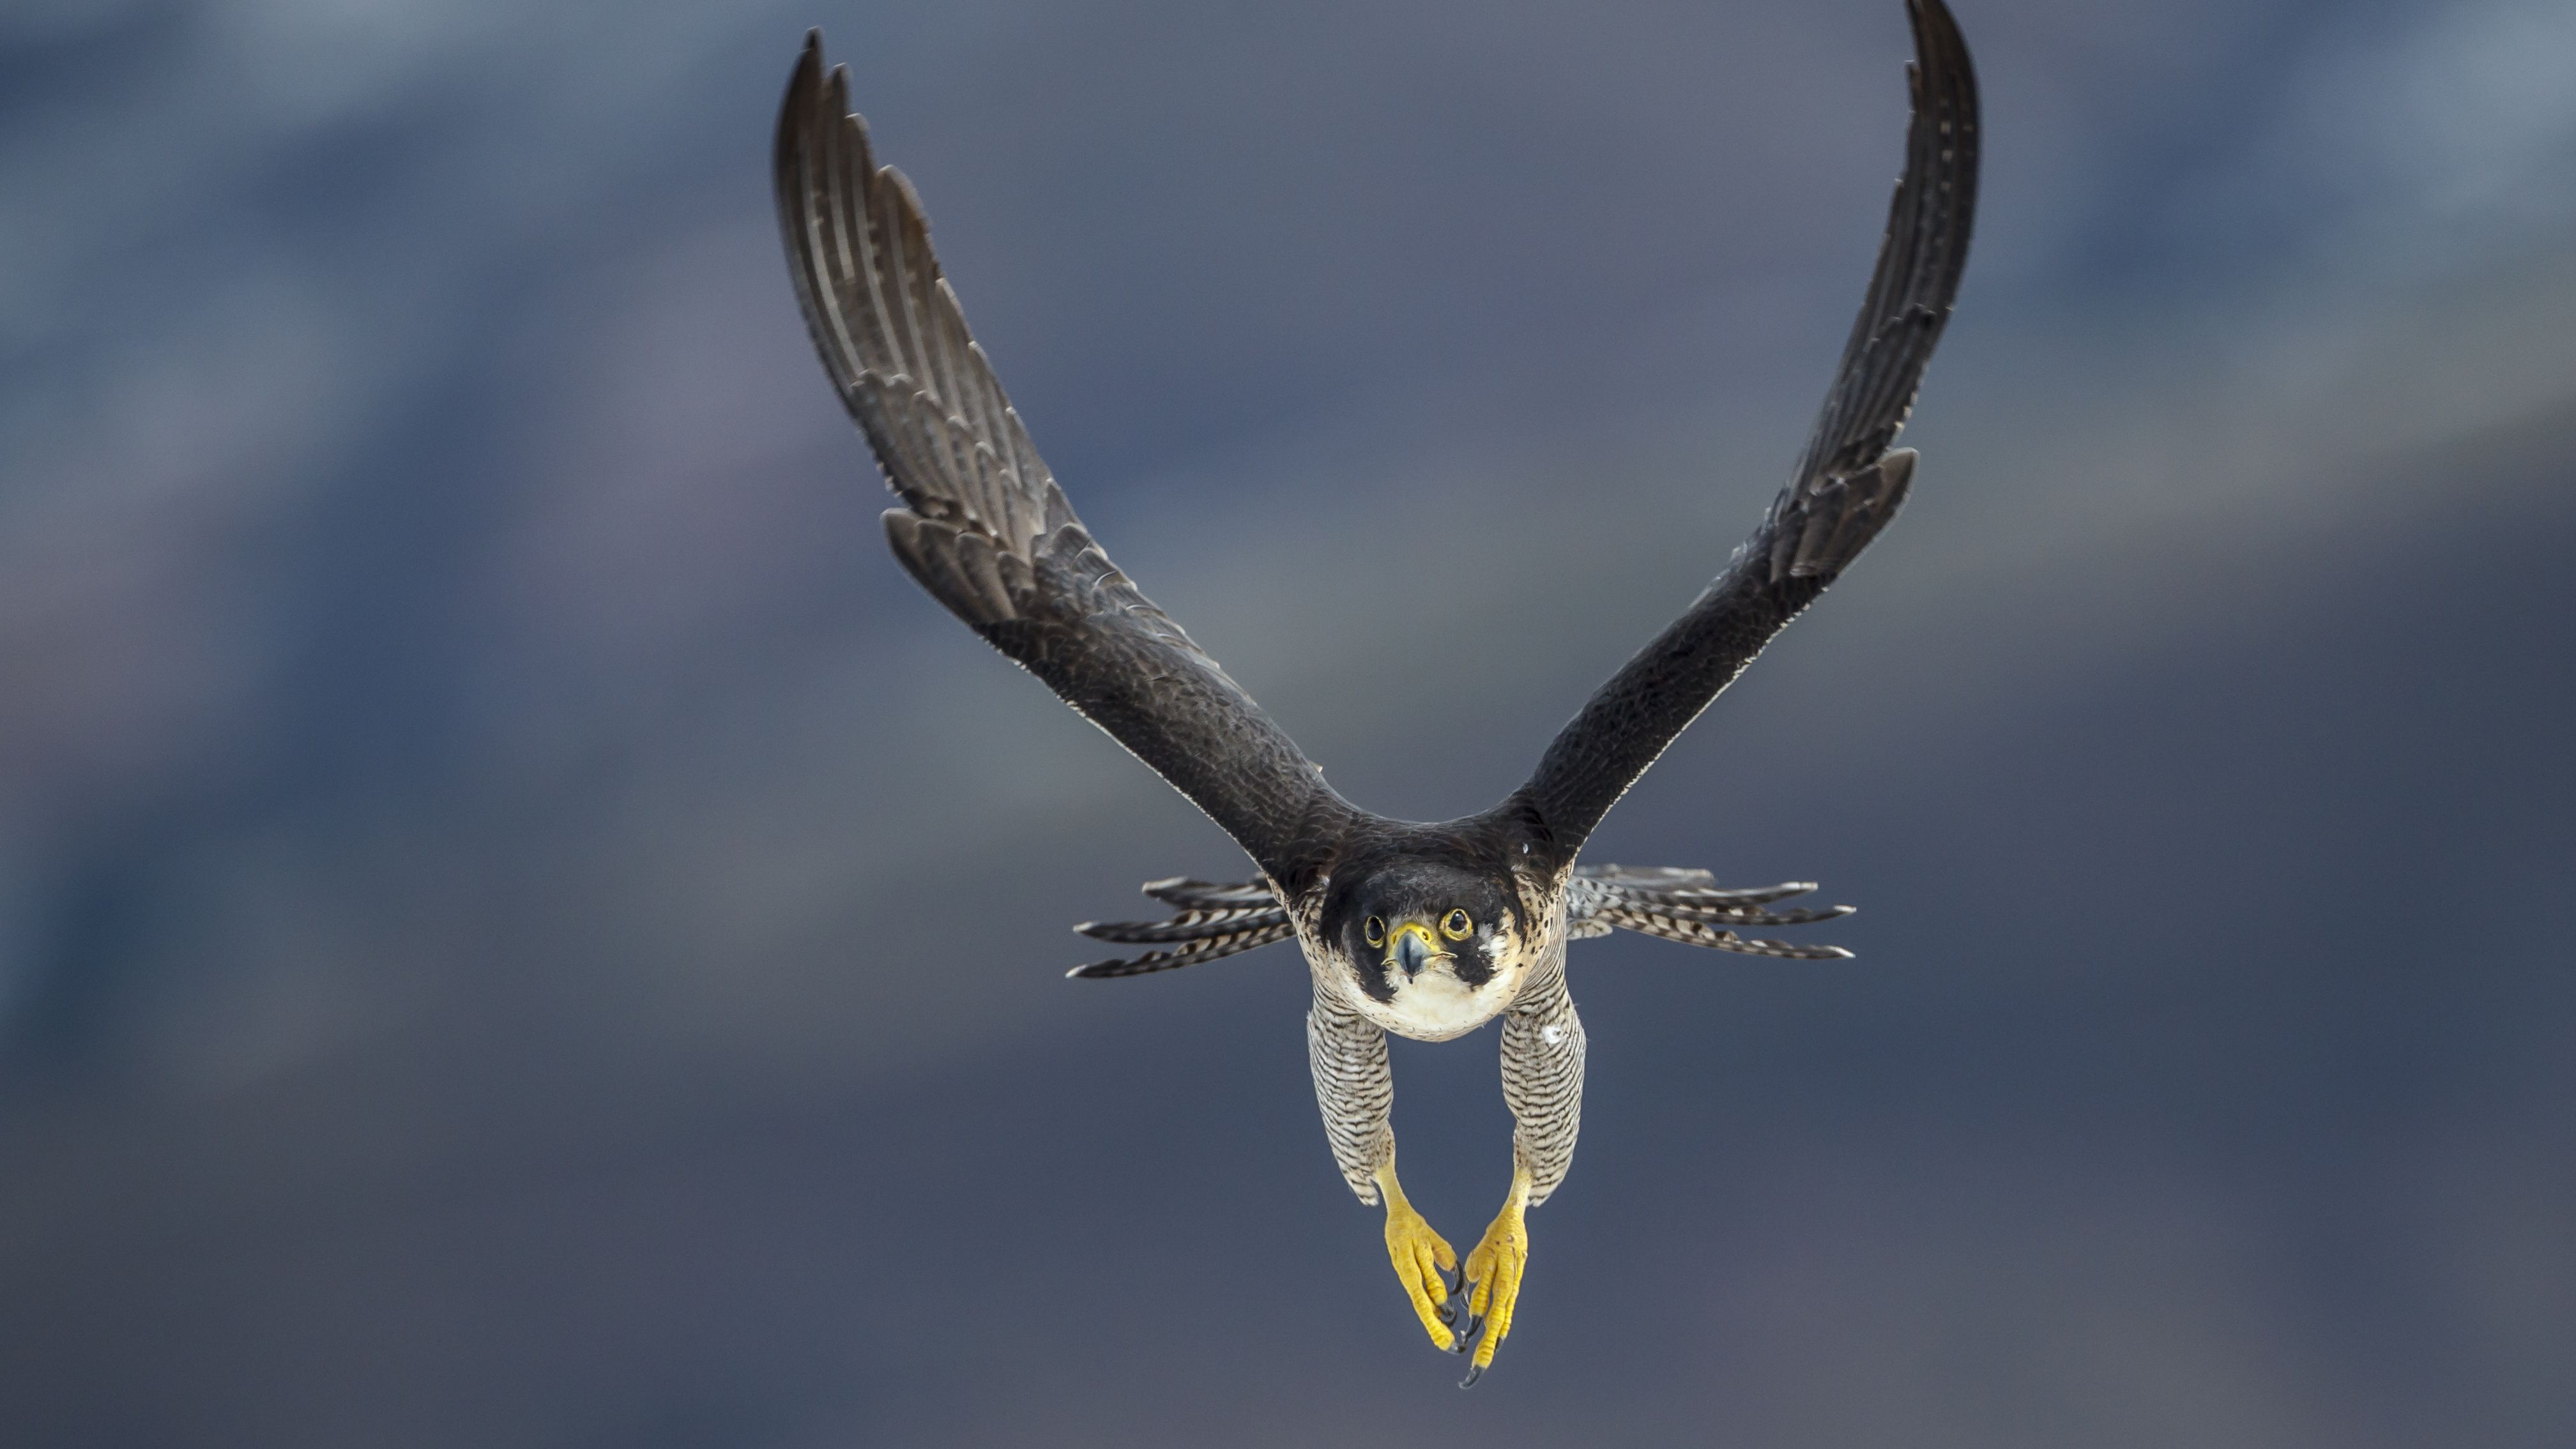 The Fastest Birds In The World